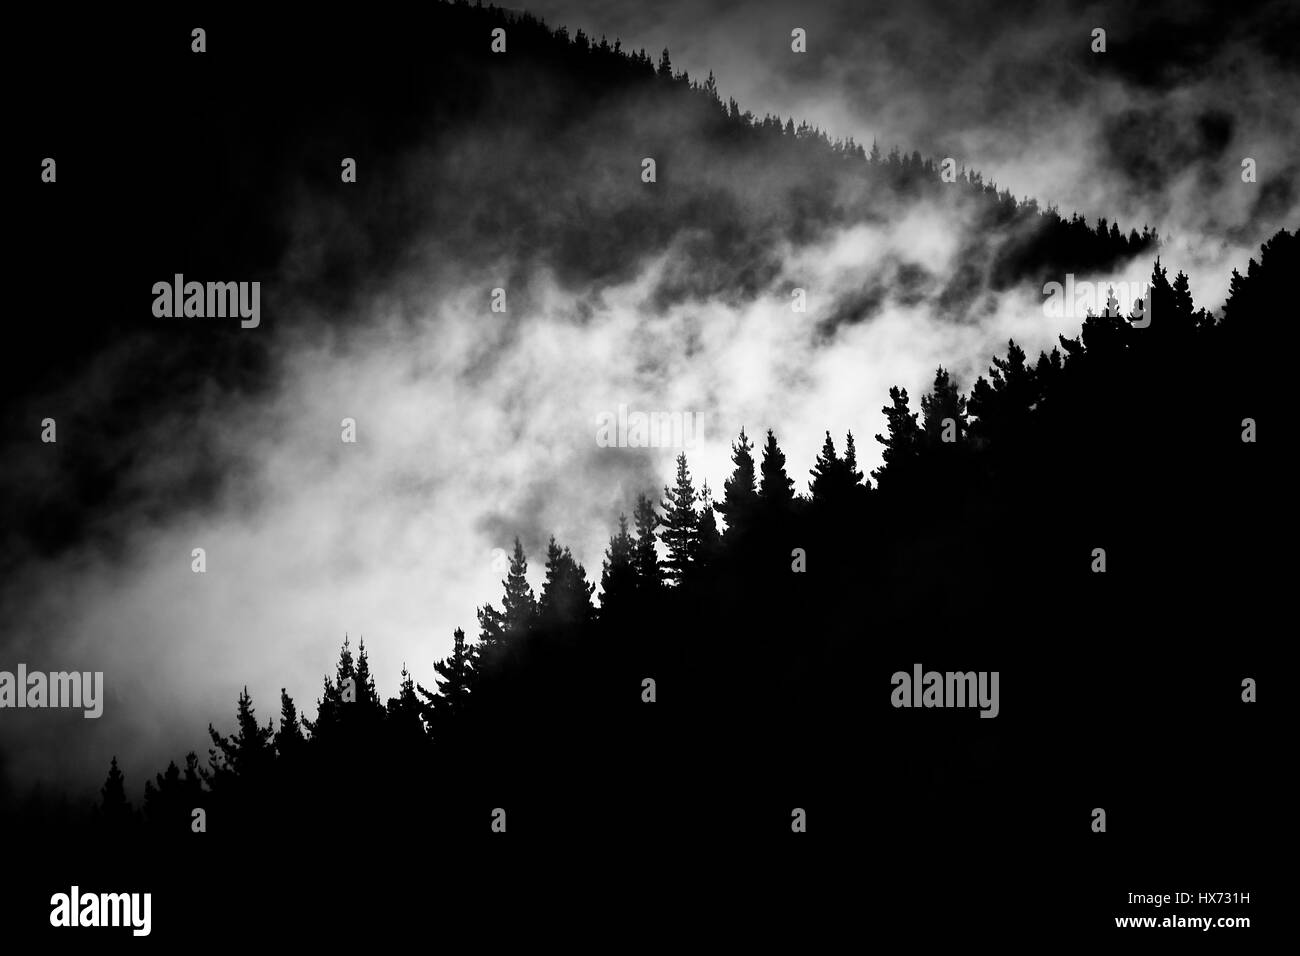 fog in the mountain valley - Stock Image